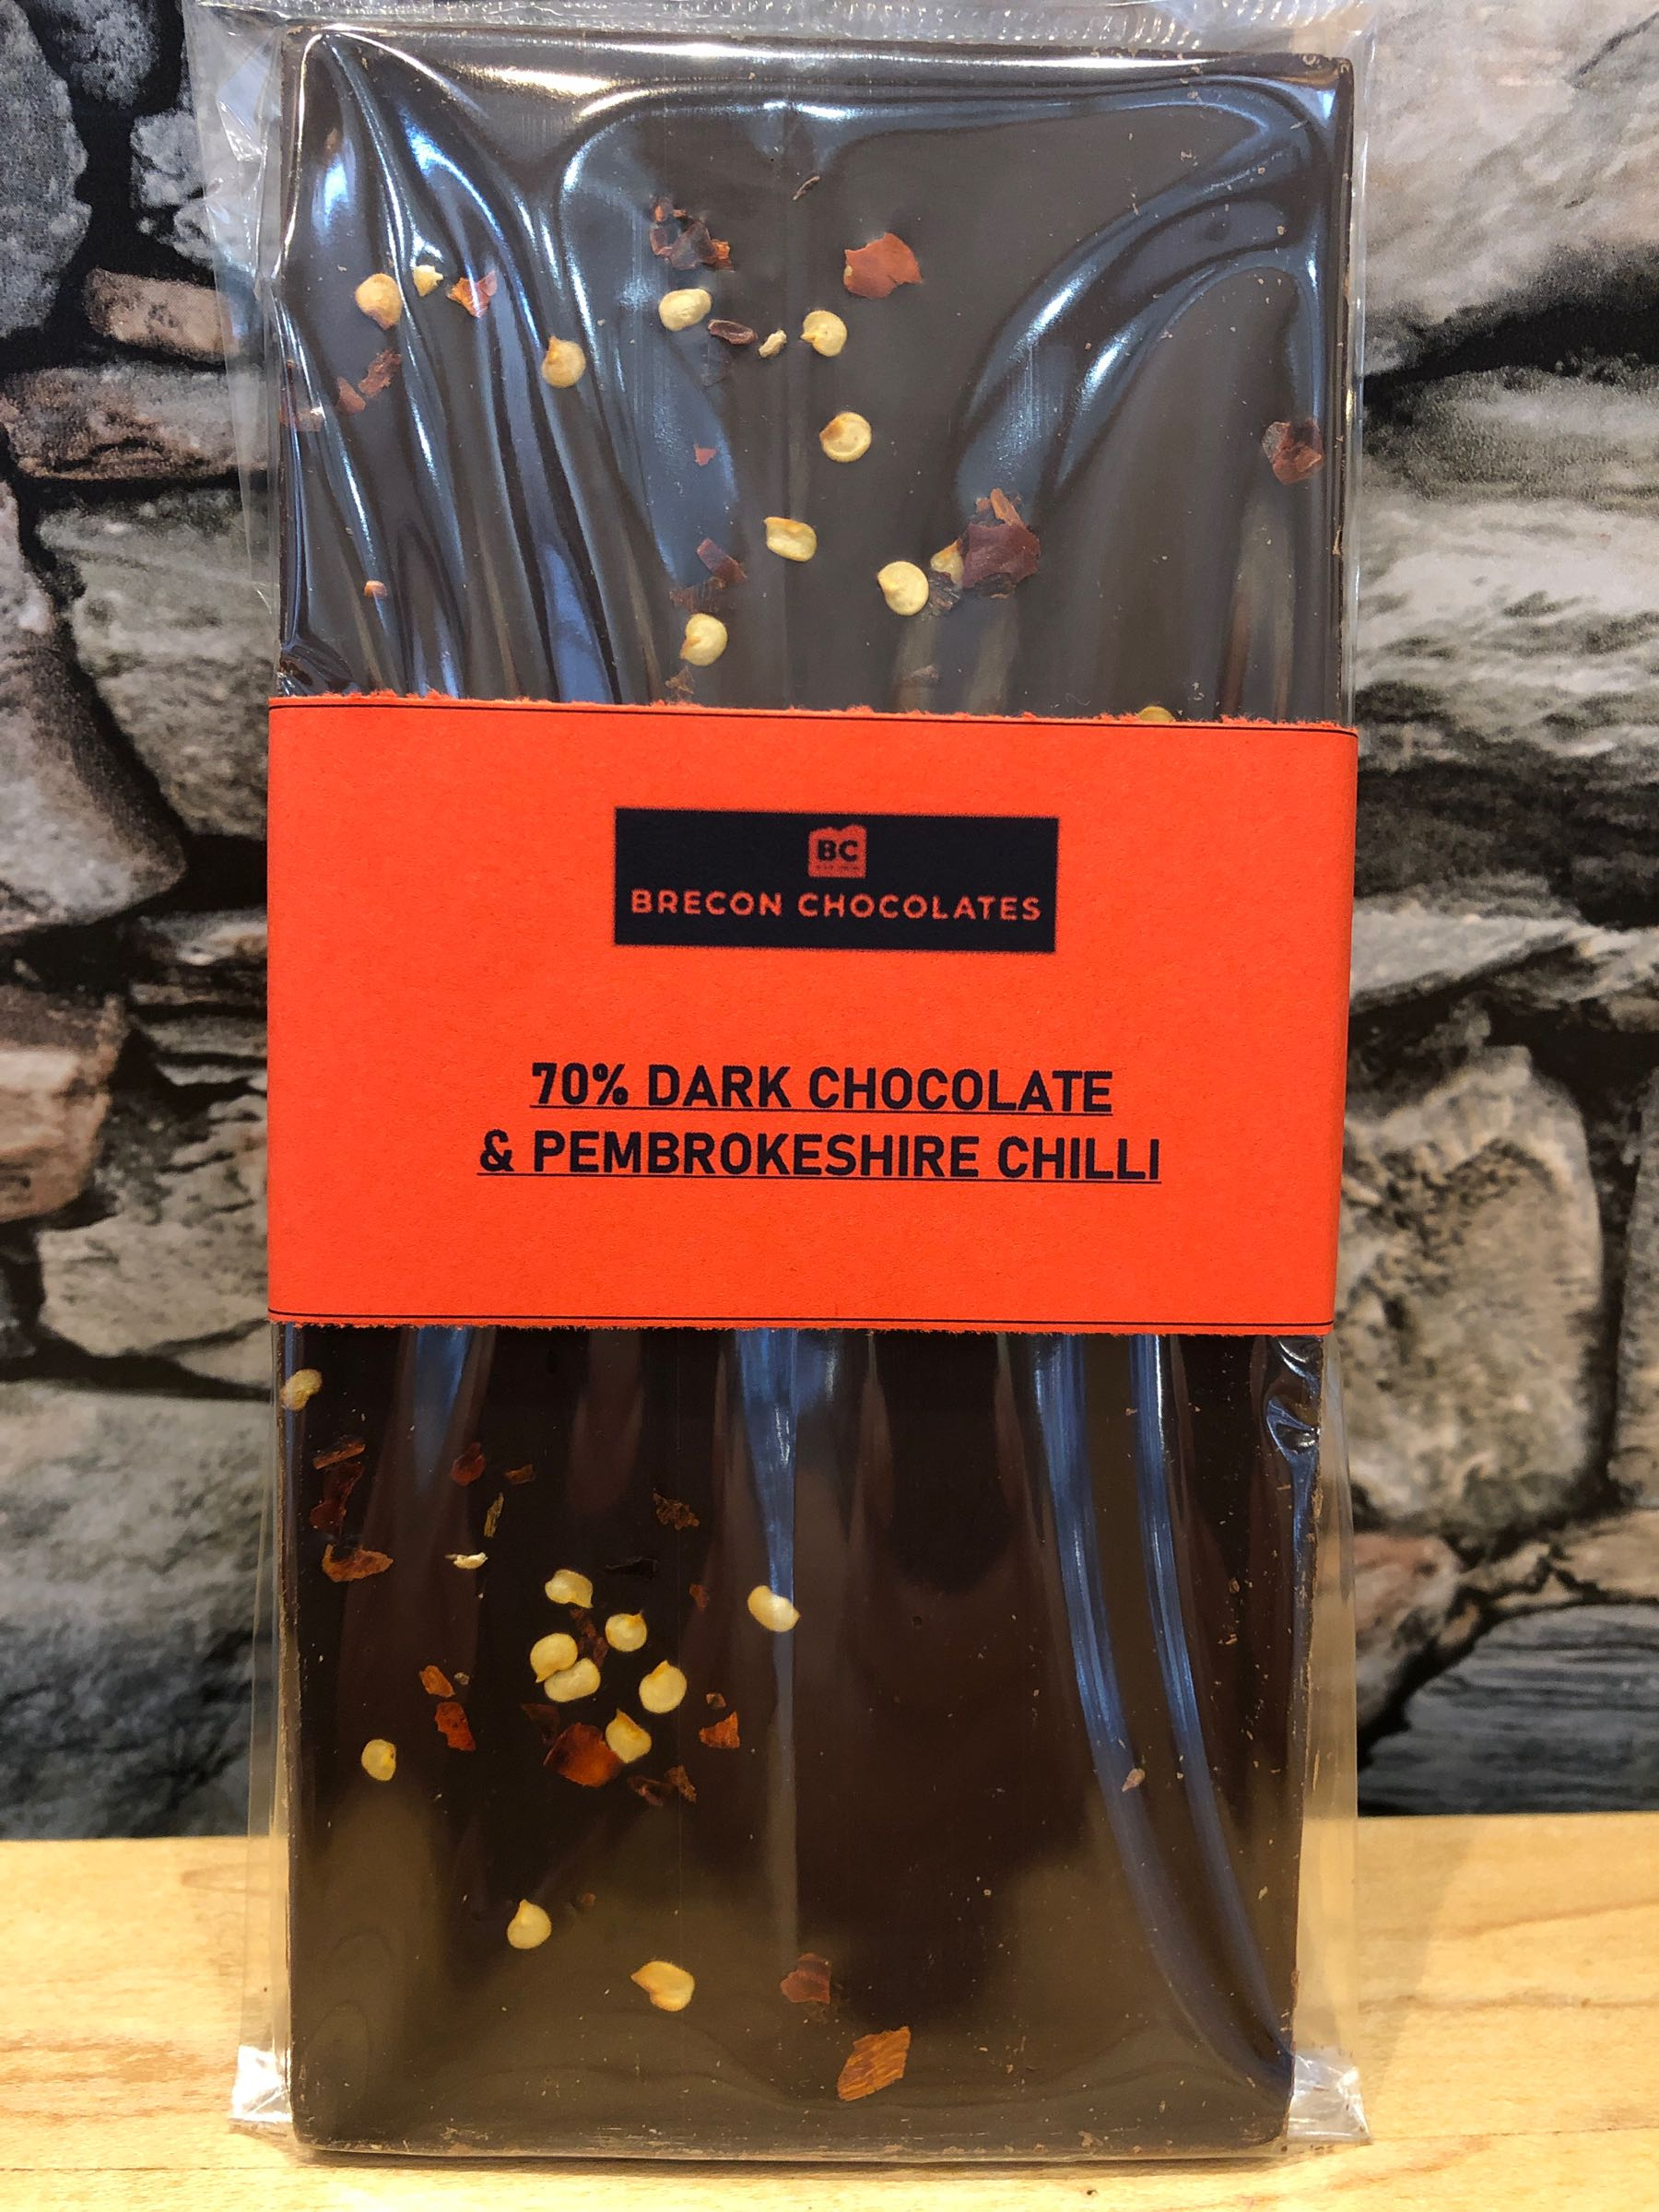 70% Dark Chocolate and Pembrokeshire Chilli